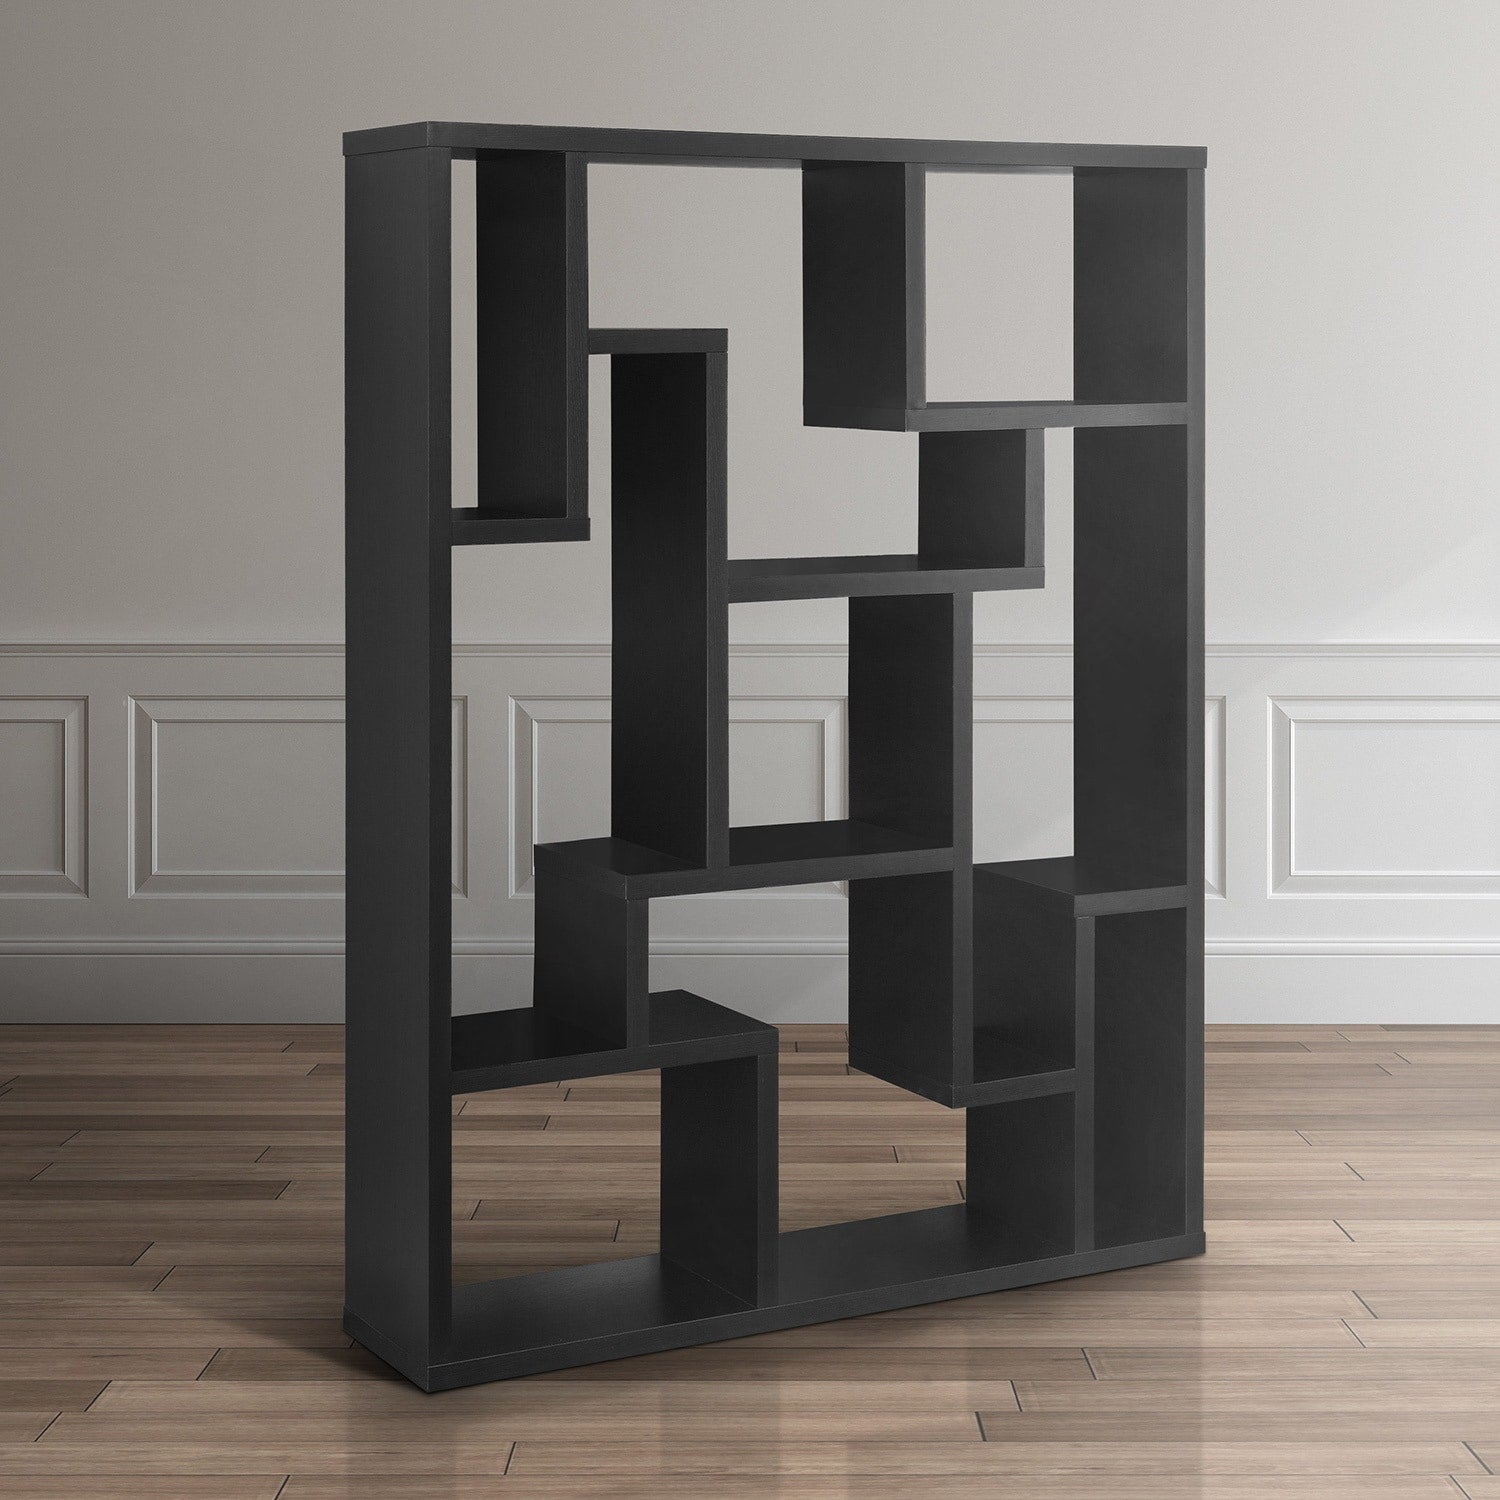 Black Bookcase Room Divider